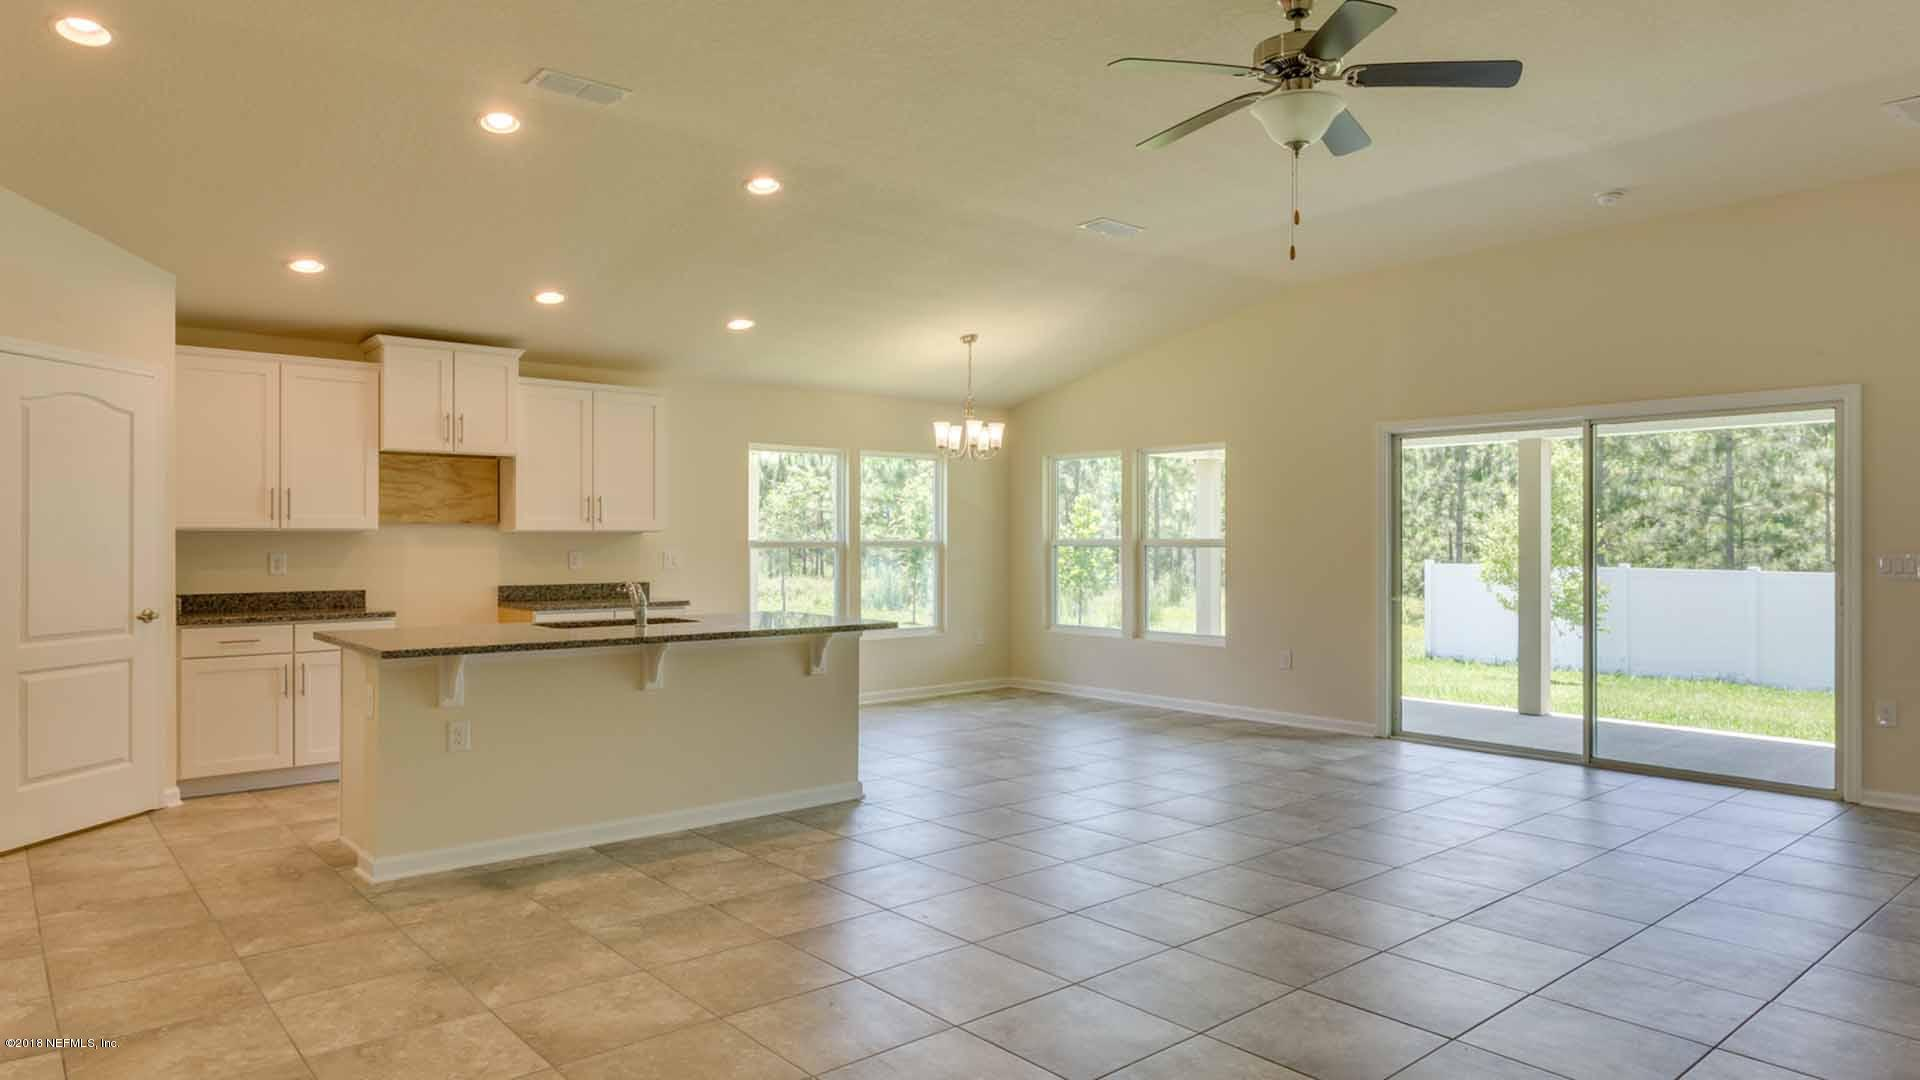 4143 SPRING CREEK, MIDDLEBURG, FLORIDA 32068, 4 Bedrooms Bedrooms, ,2 BathroomsBathrooms,Residential - single family,For sale,SPRING CREEK,906585